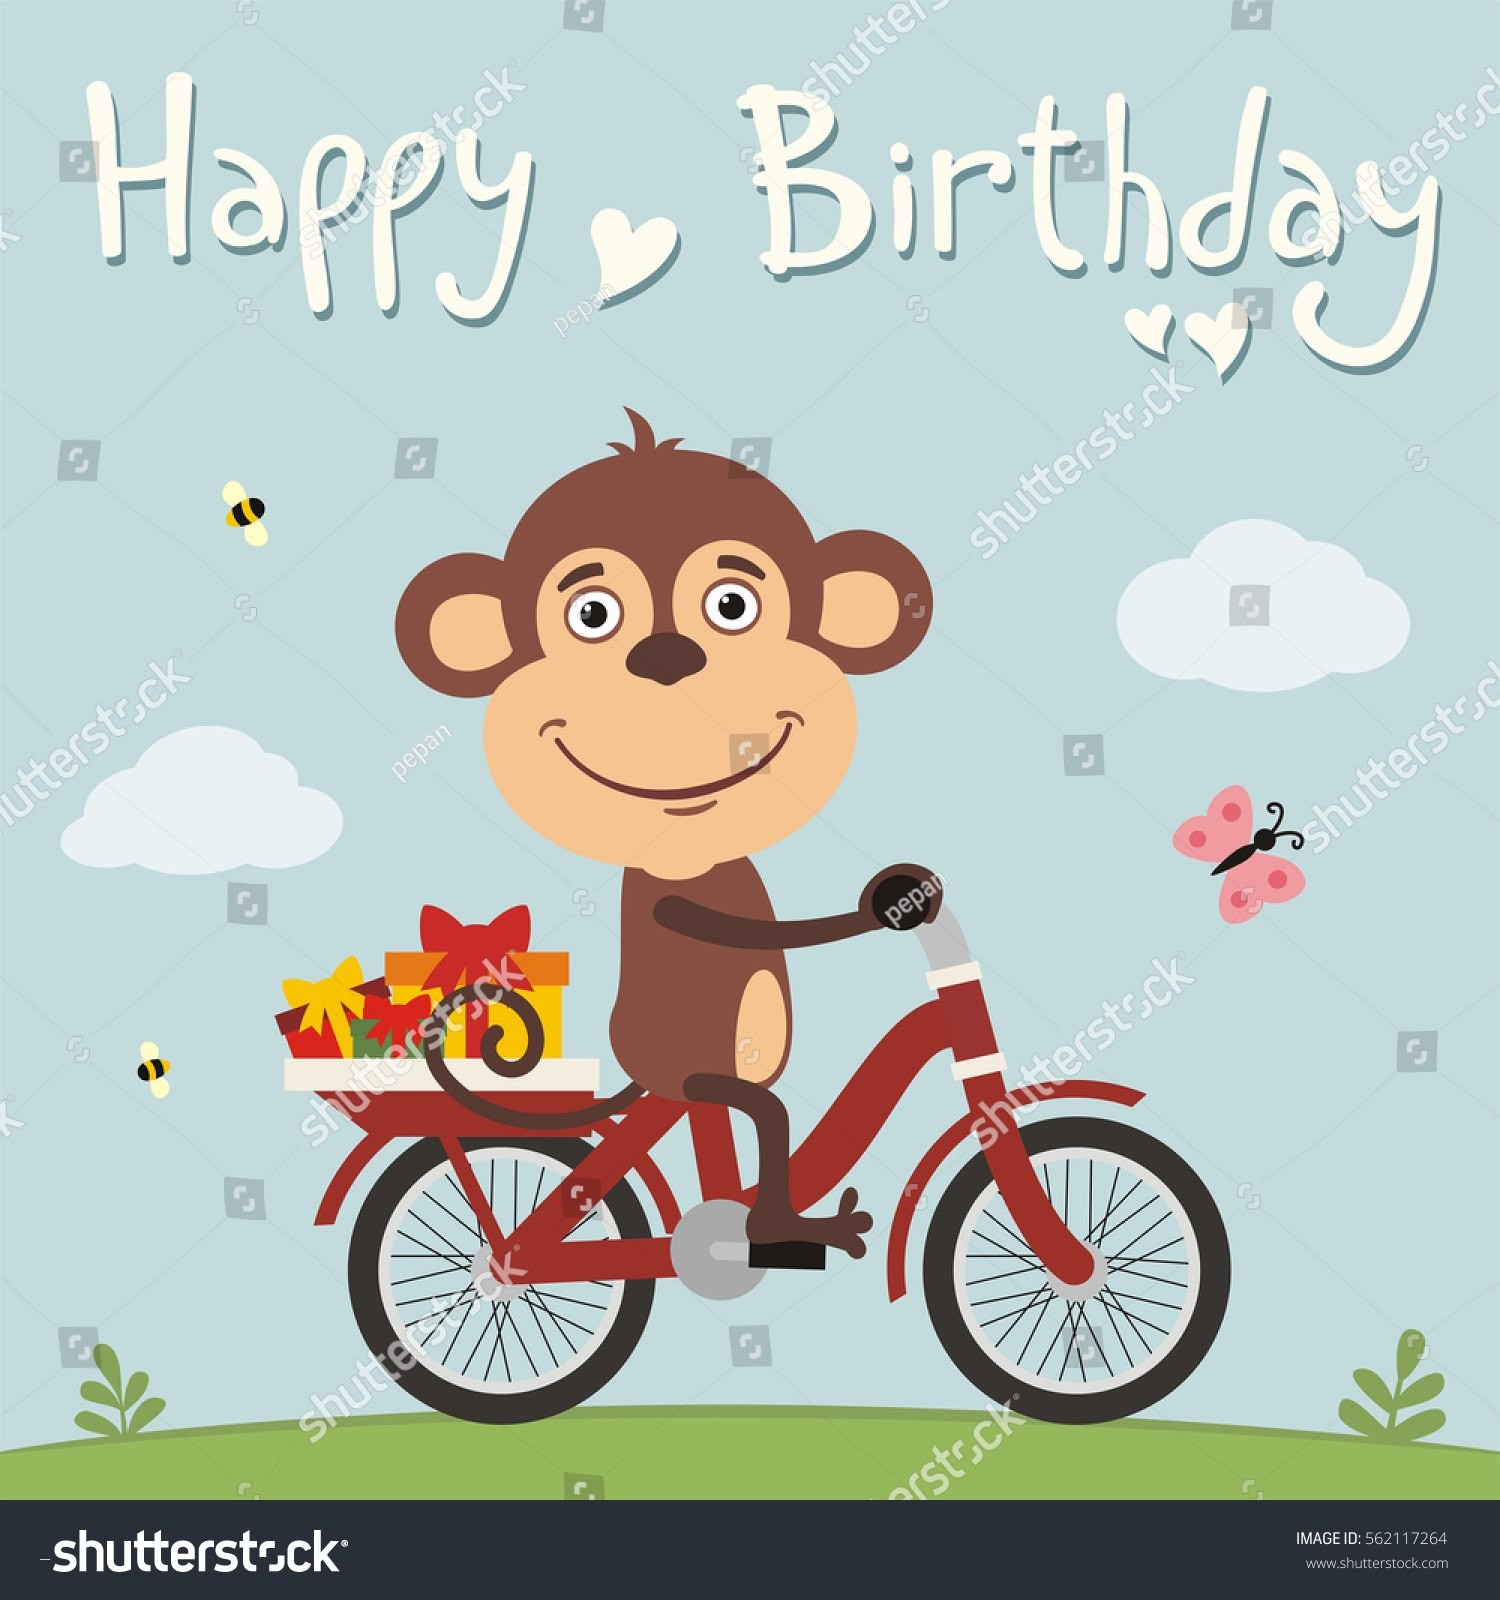 blink 182 birthday card ; rock-and-roll-birthday-cards-free-best-of-happy-birthday-wishes-for-bikers-inspirational-funny-motorcycle-of-rock-and-roll-birthday-cards-free